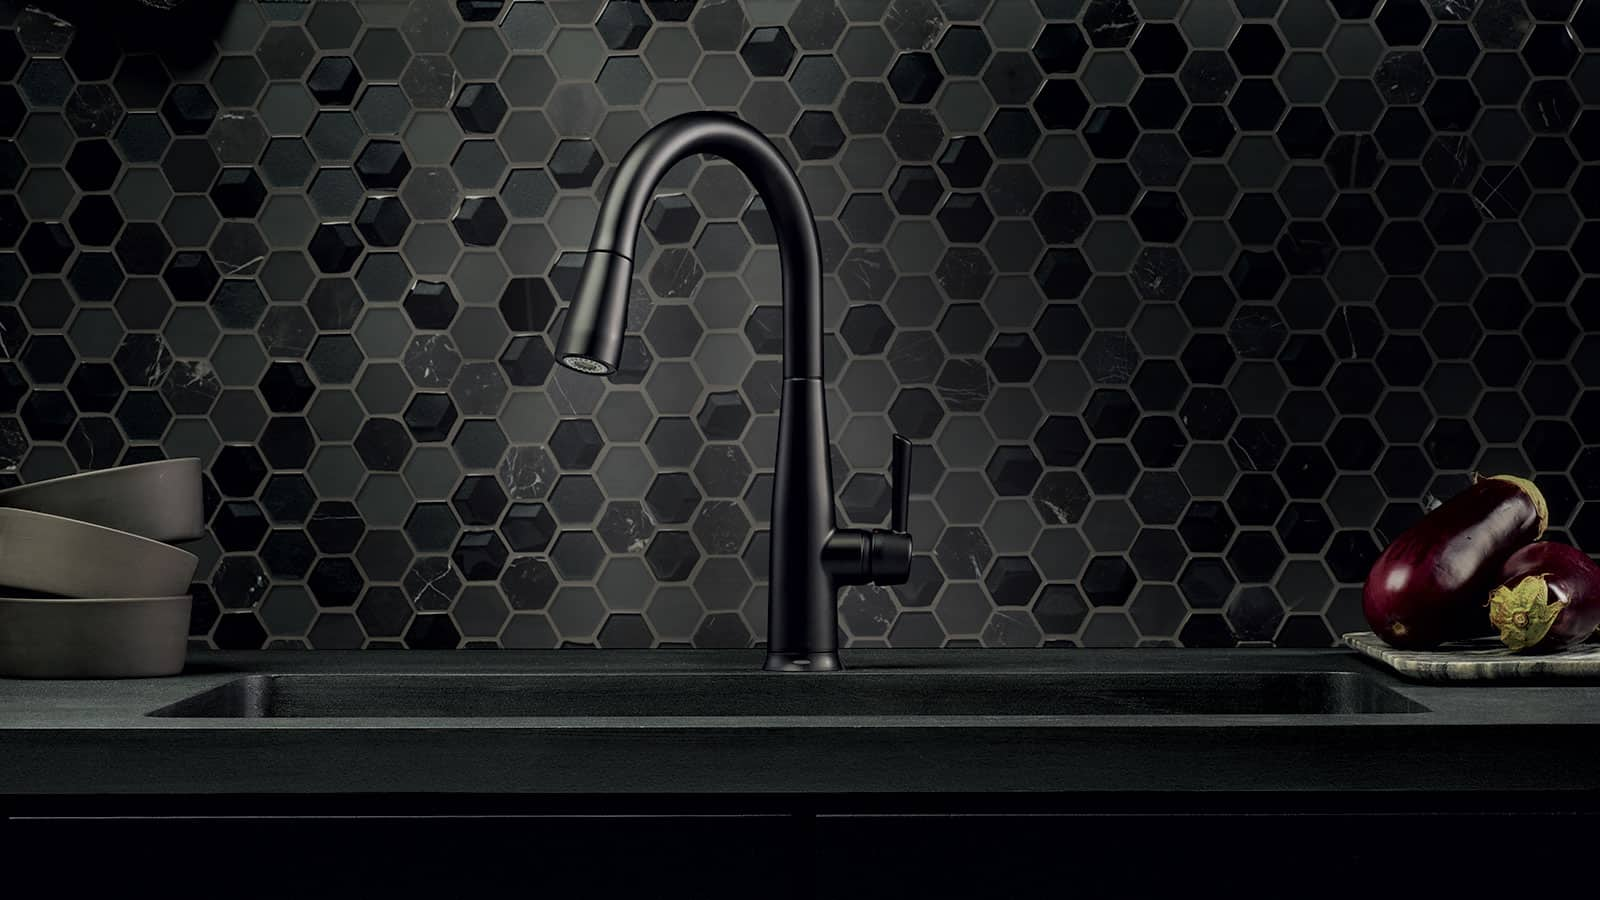 The elegance a black faucet adds to a kitchen is indescribable.